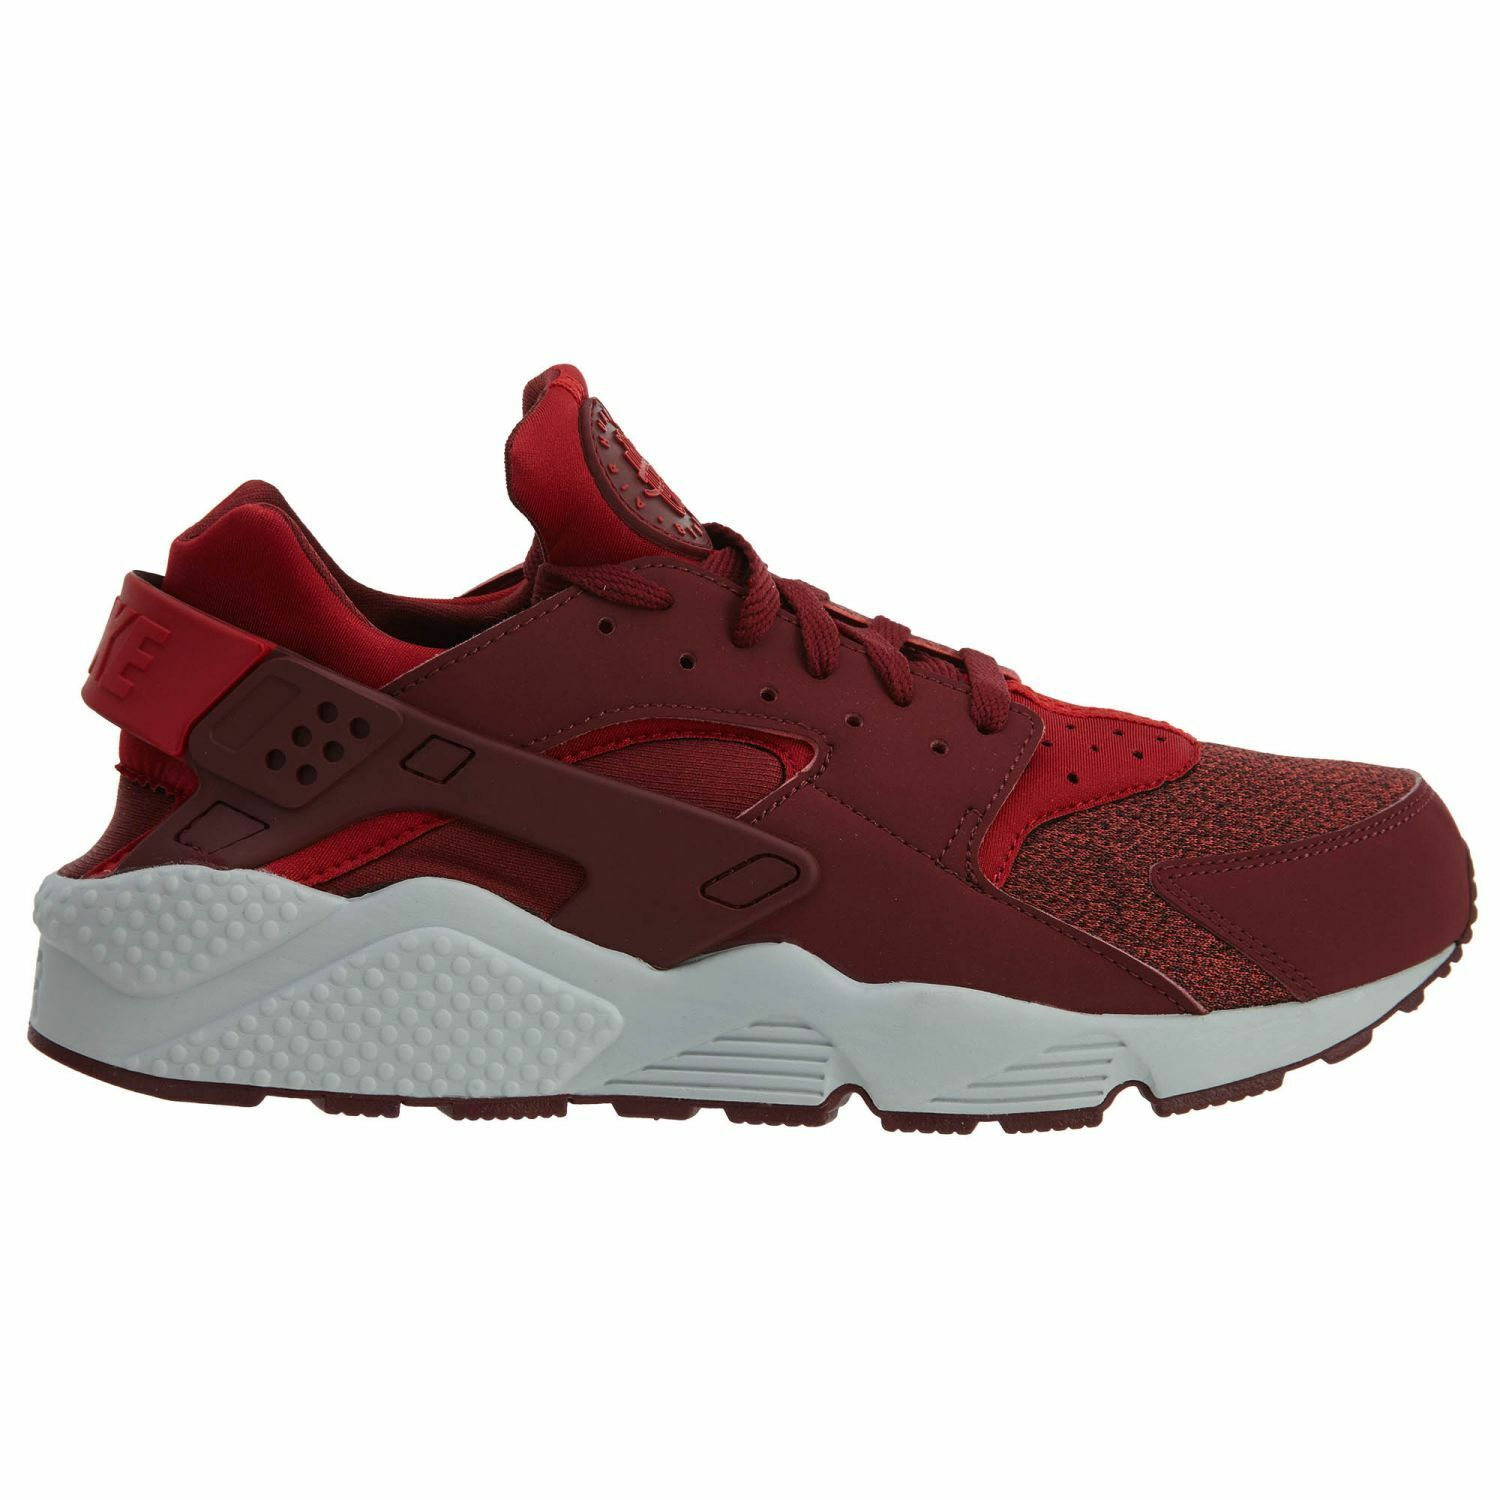 Nike Air Huarache Mens 318429-605 Team University Red Running Shoes Size 10.5